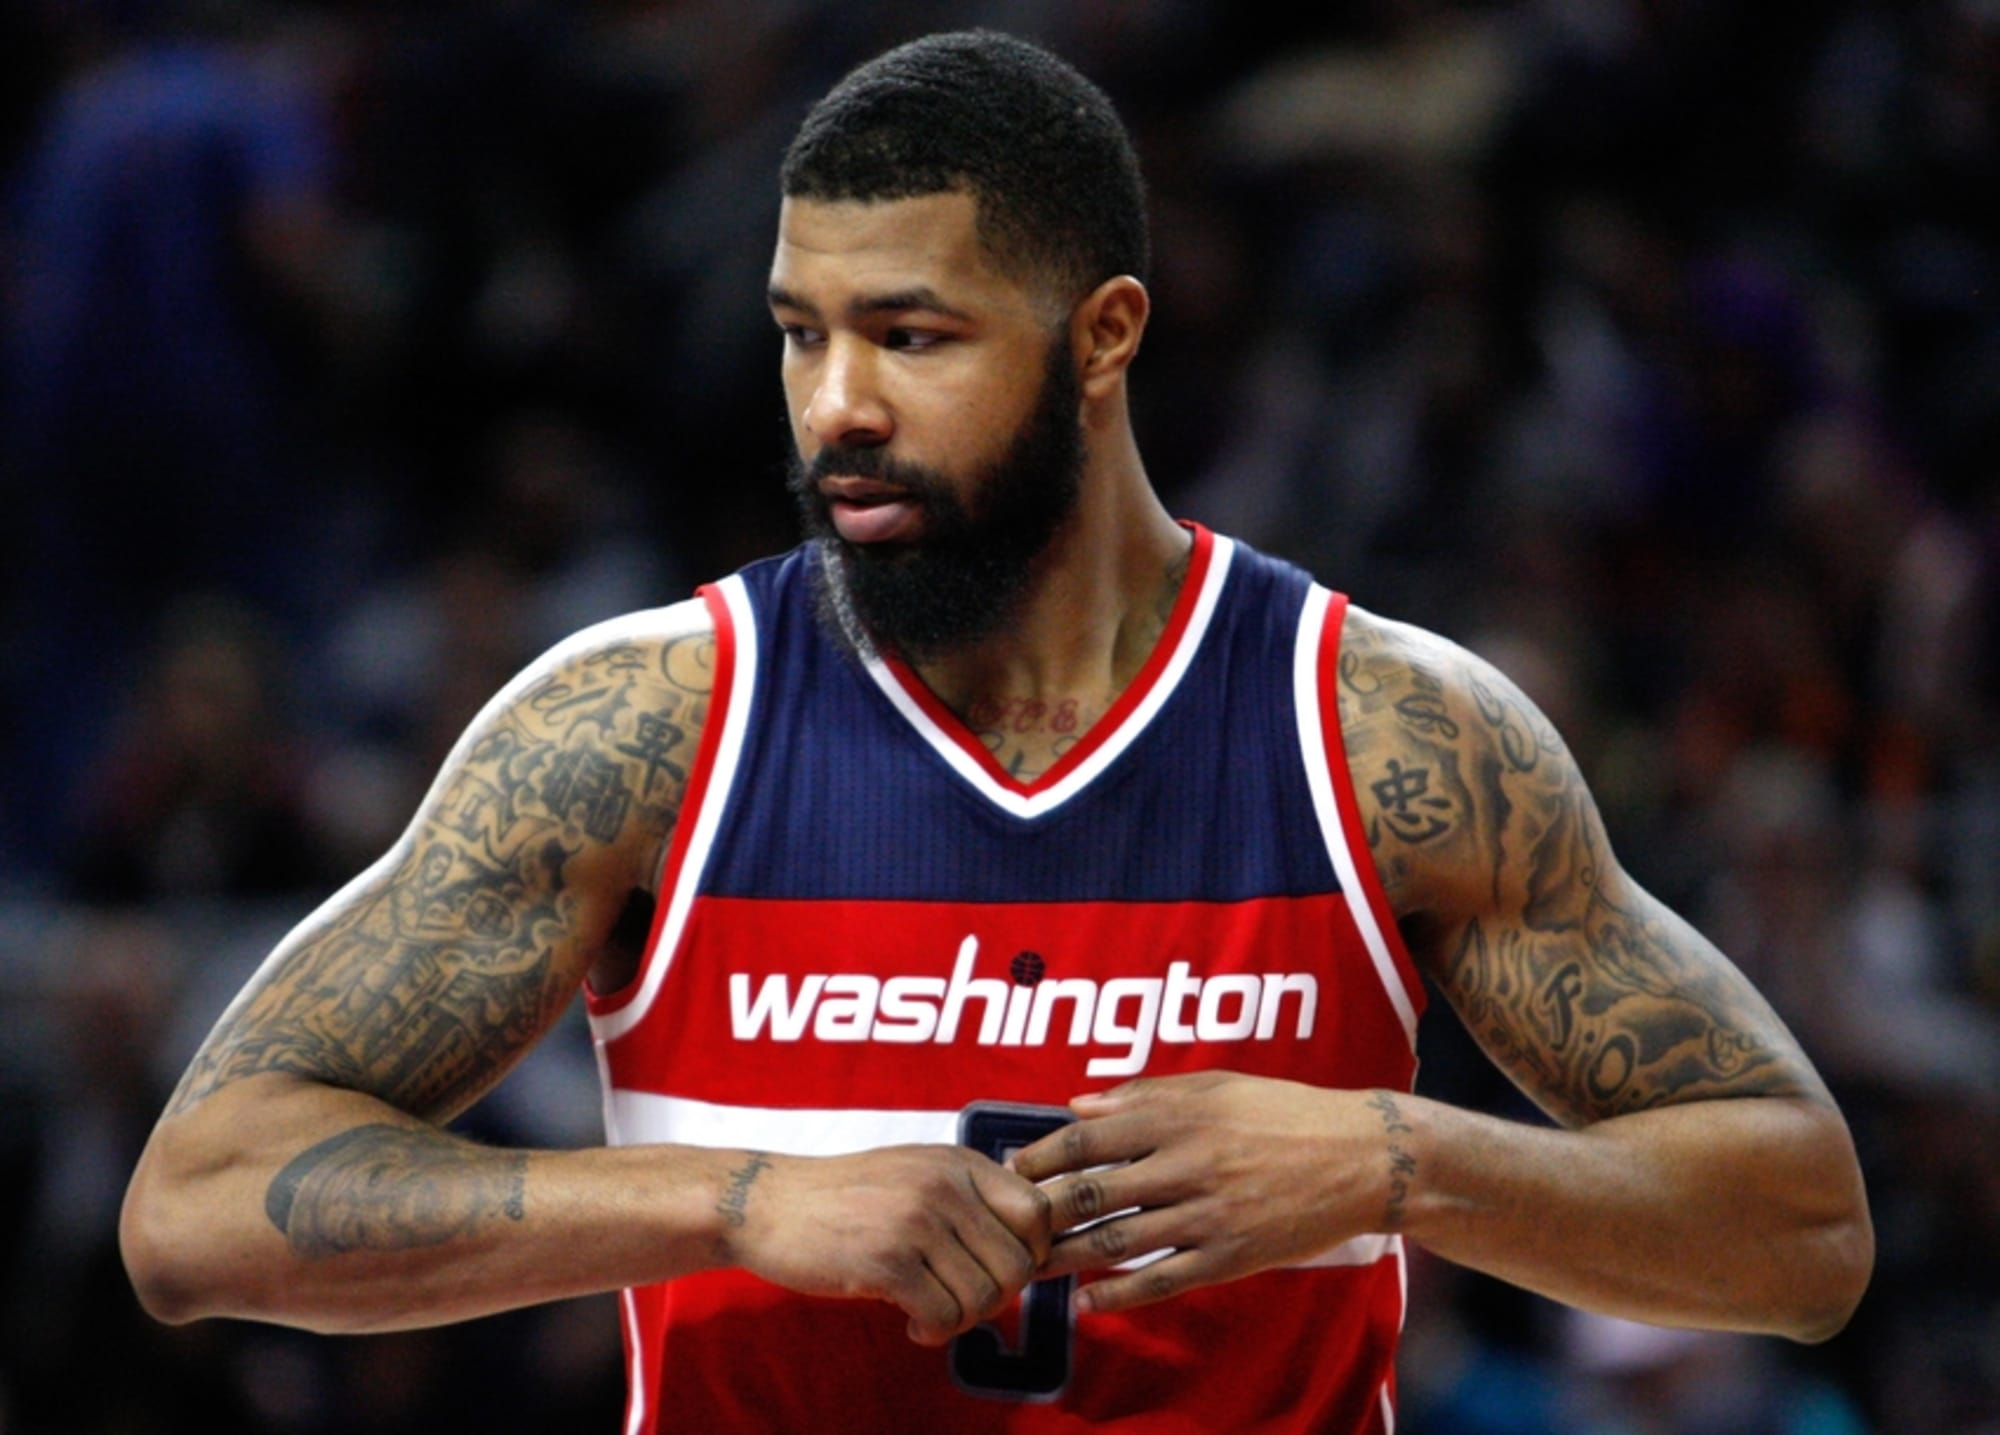 Washington Wizards Forward Markieff Morris Avoids Charges